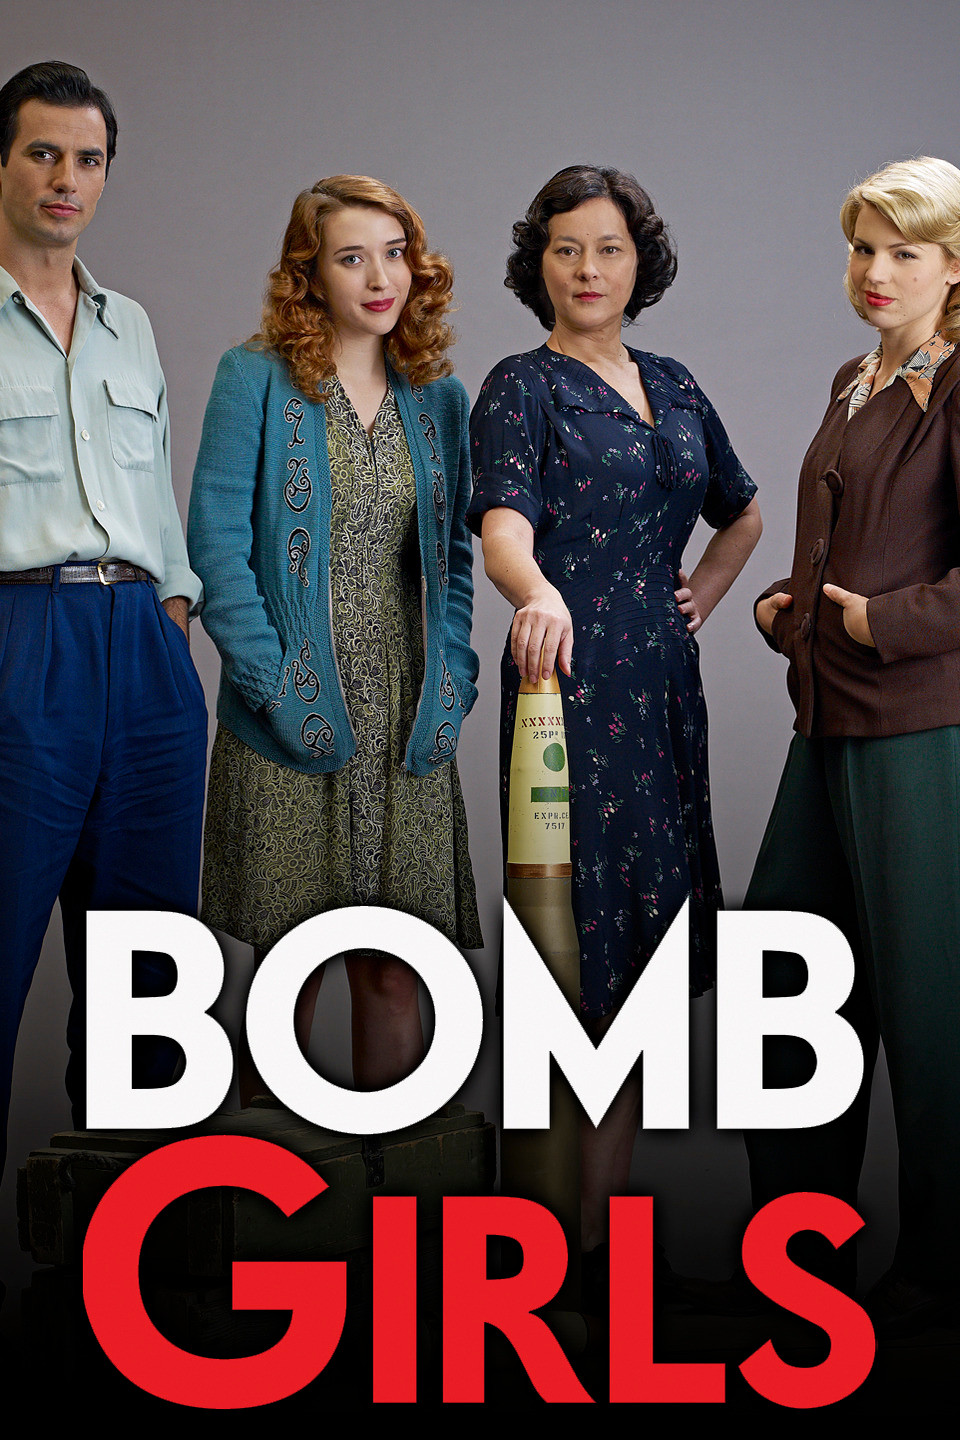 SBomb Girls Season 2 Full Download Complete 480p WEB-DL